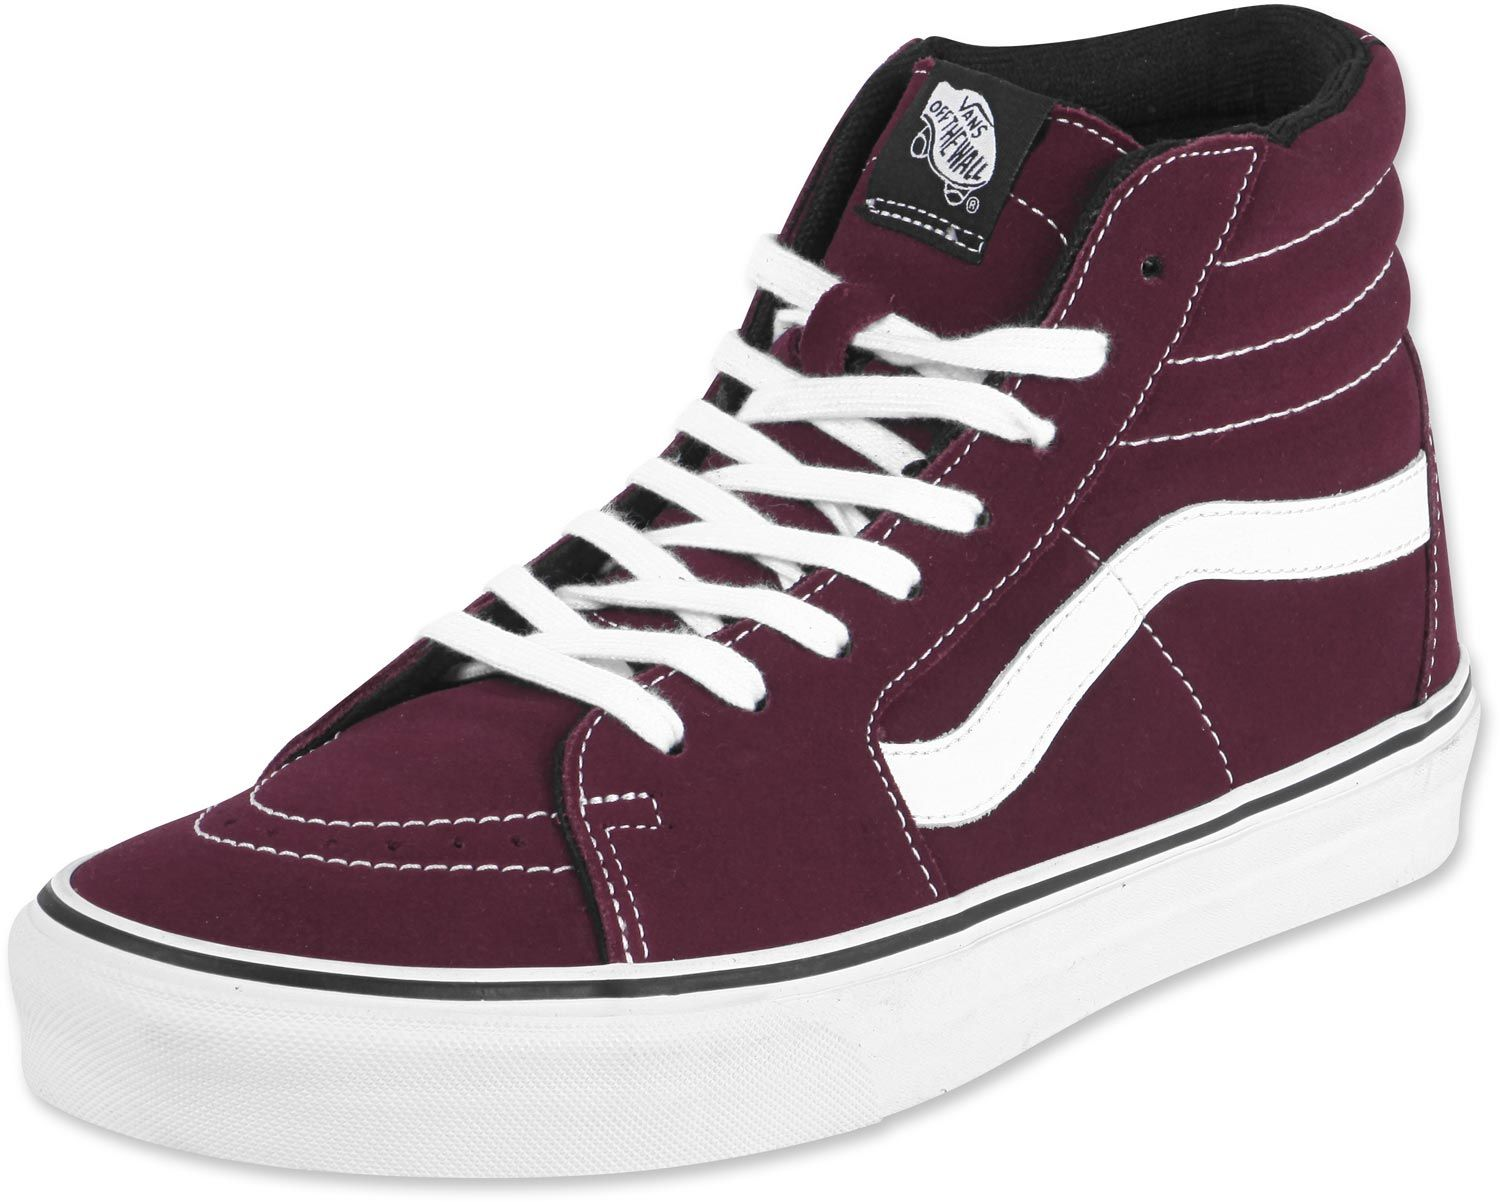 Go Britain | Maroon shoes, White vans, Sk8 hi vans